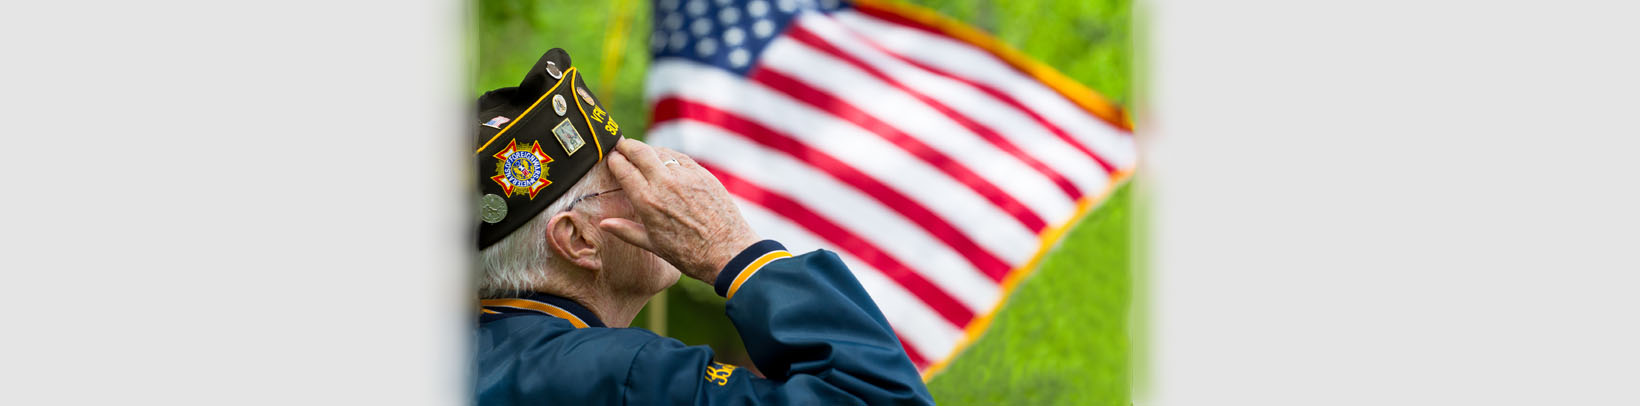 how to get veterans benefits for assisted living